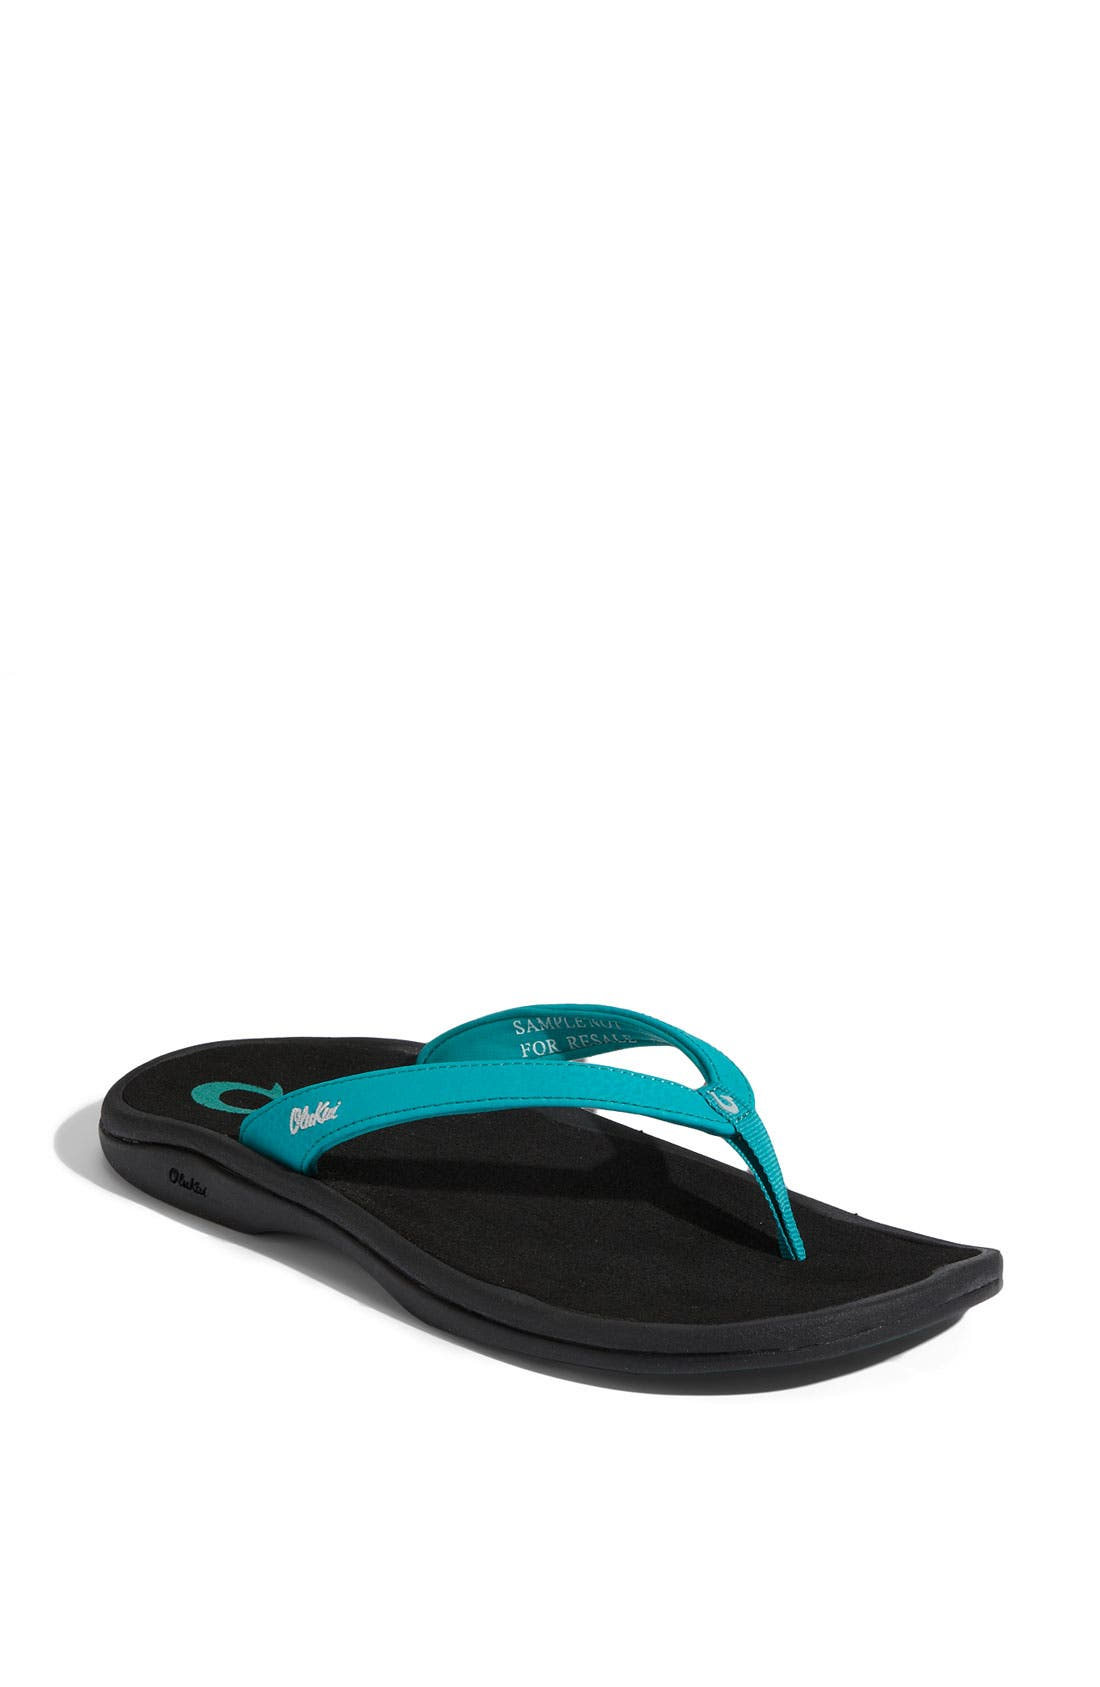 Alternate Image 1 Selected - OluKai 'Amo-W' Flip Flop